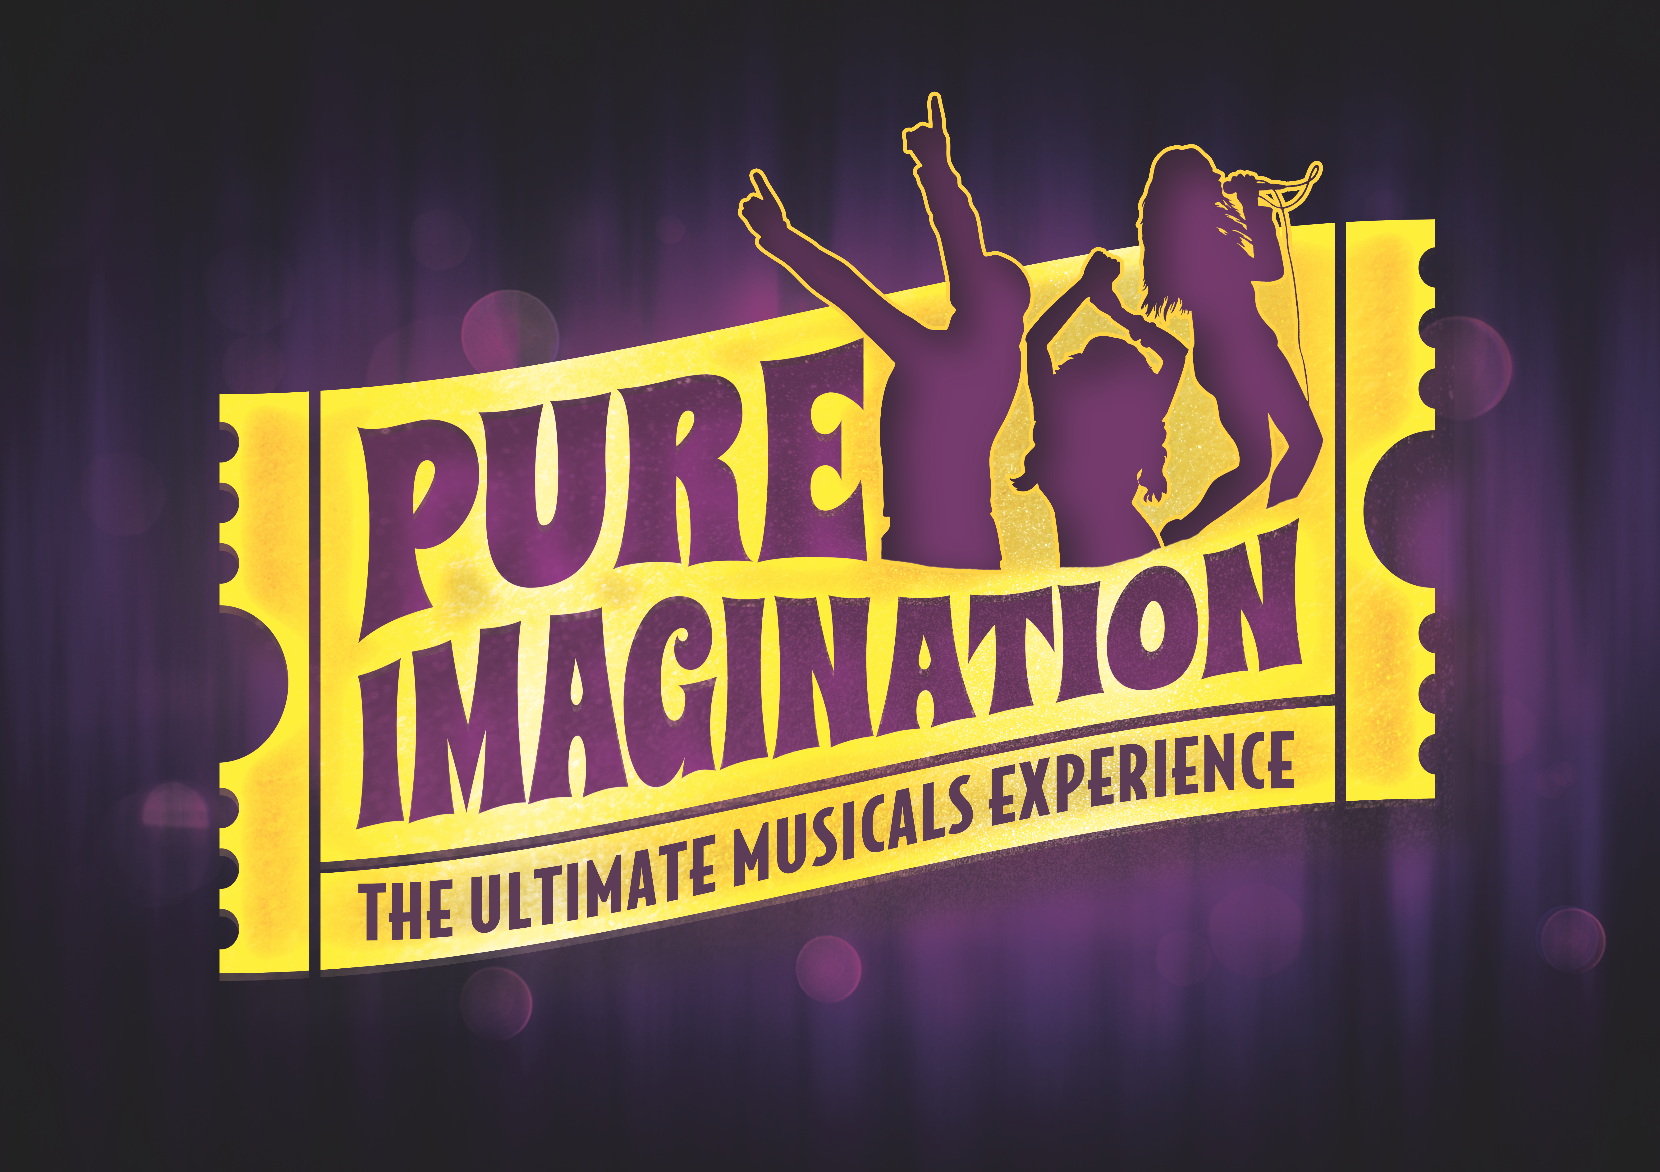 Pure Imagination: The Ultimate Musicals Experience